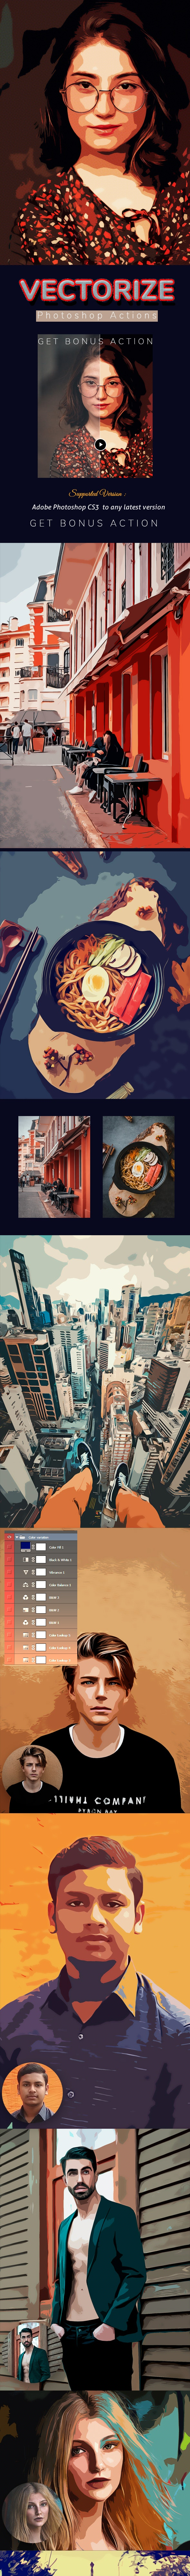 Vectorize Action - Photo Effects Actions